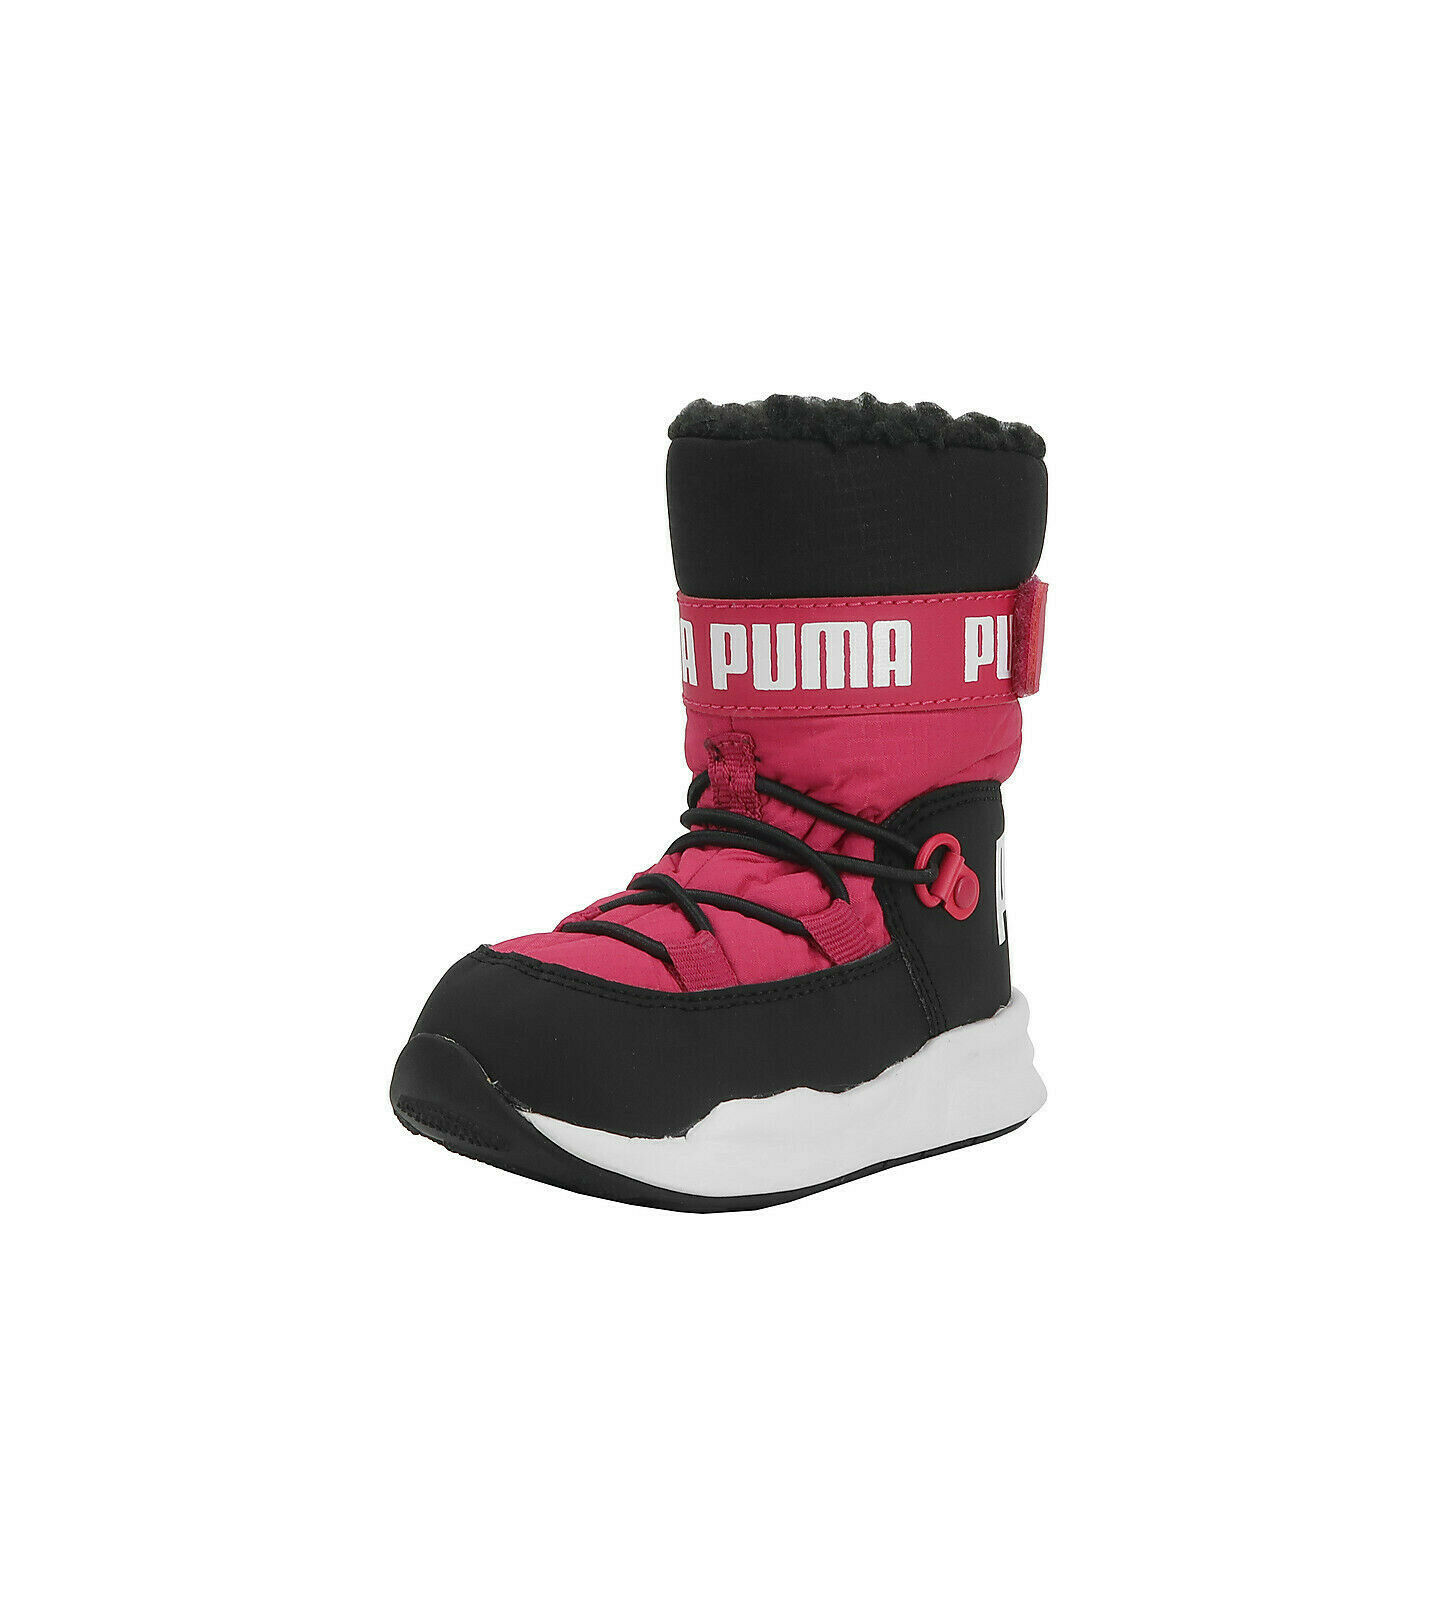 PUMA Trinomic Hot Pink Black White Snow Boots Water Proof Infants Babies Shoes